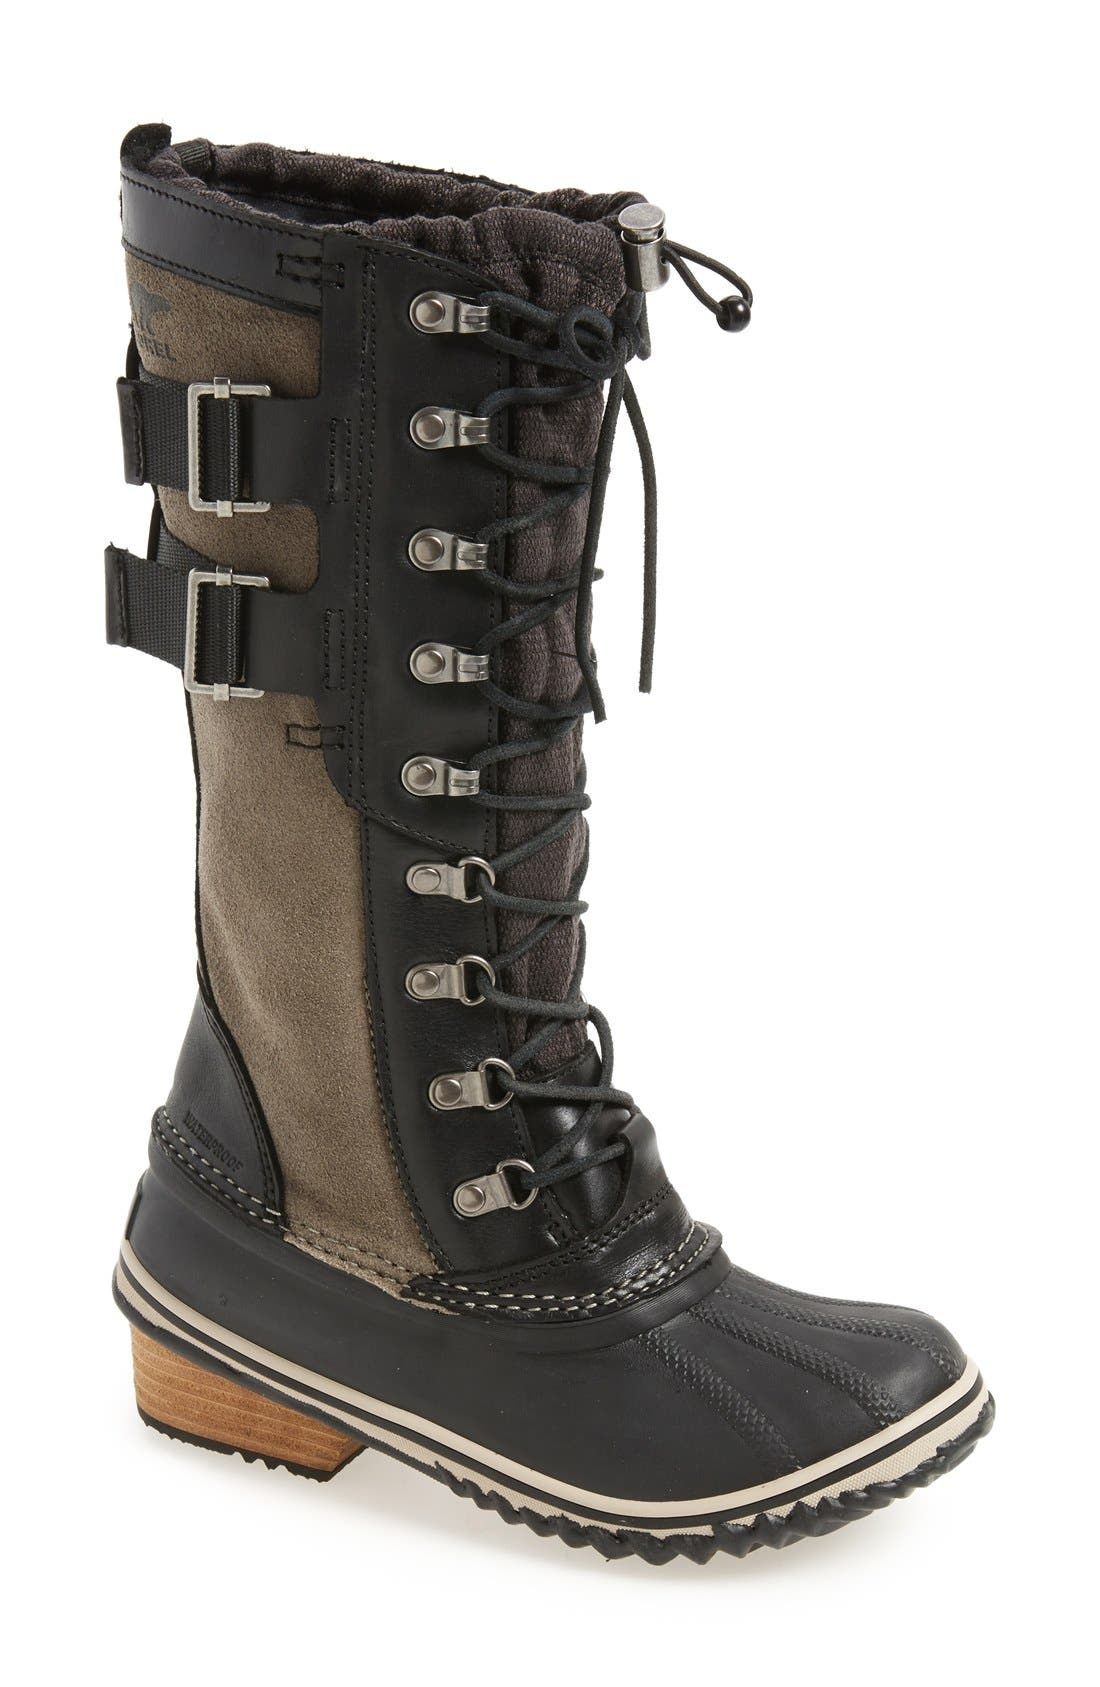 'Conquest Carly II' Waterproof Mid Calf Boot,                             Main thumbnail 1, color,                             Black